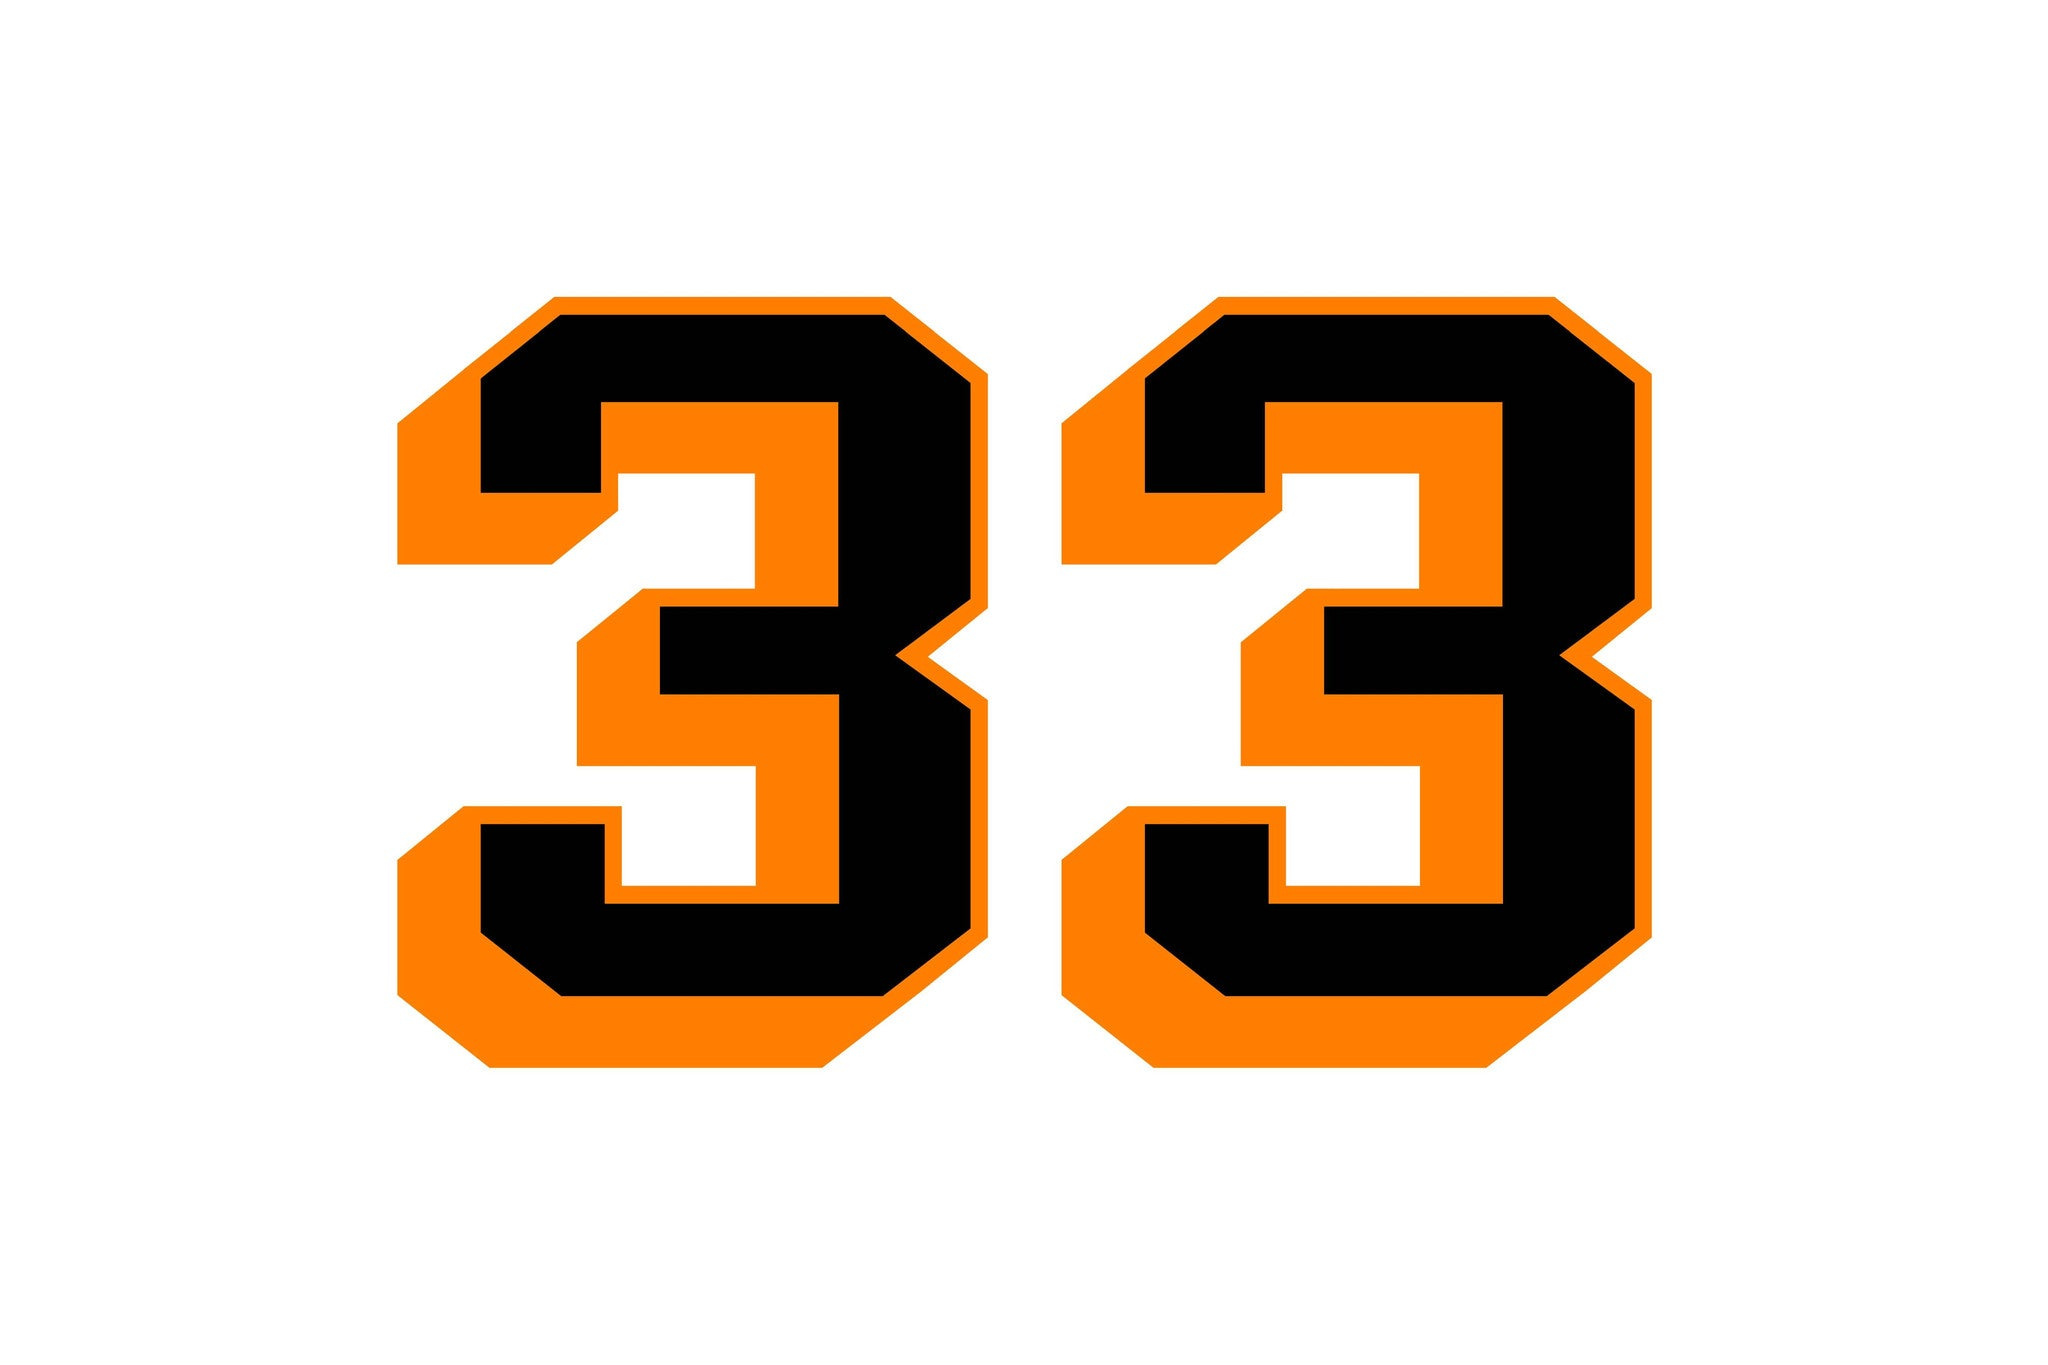 33 >> Sticker 33 Helmet Small Kentland Merchandise Store